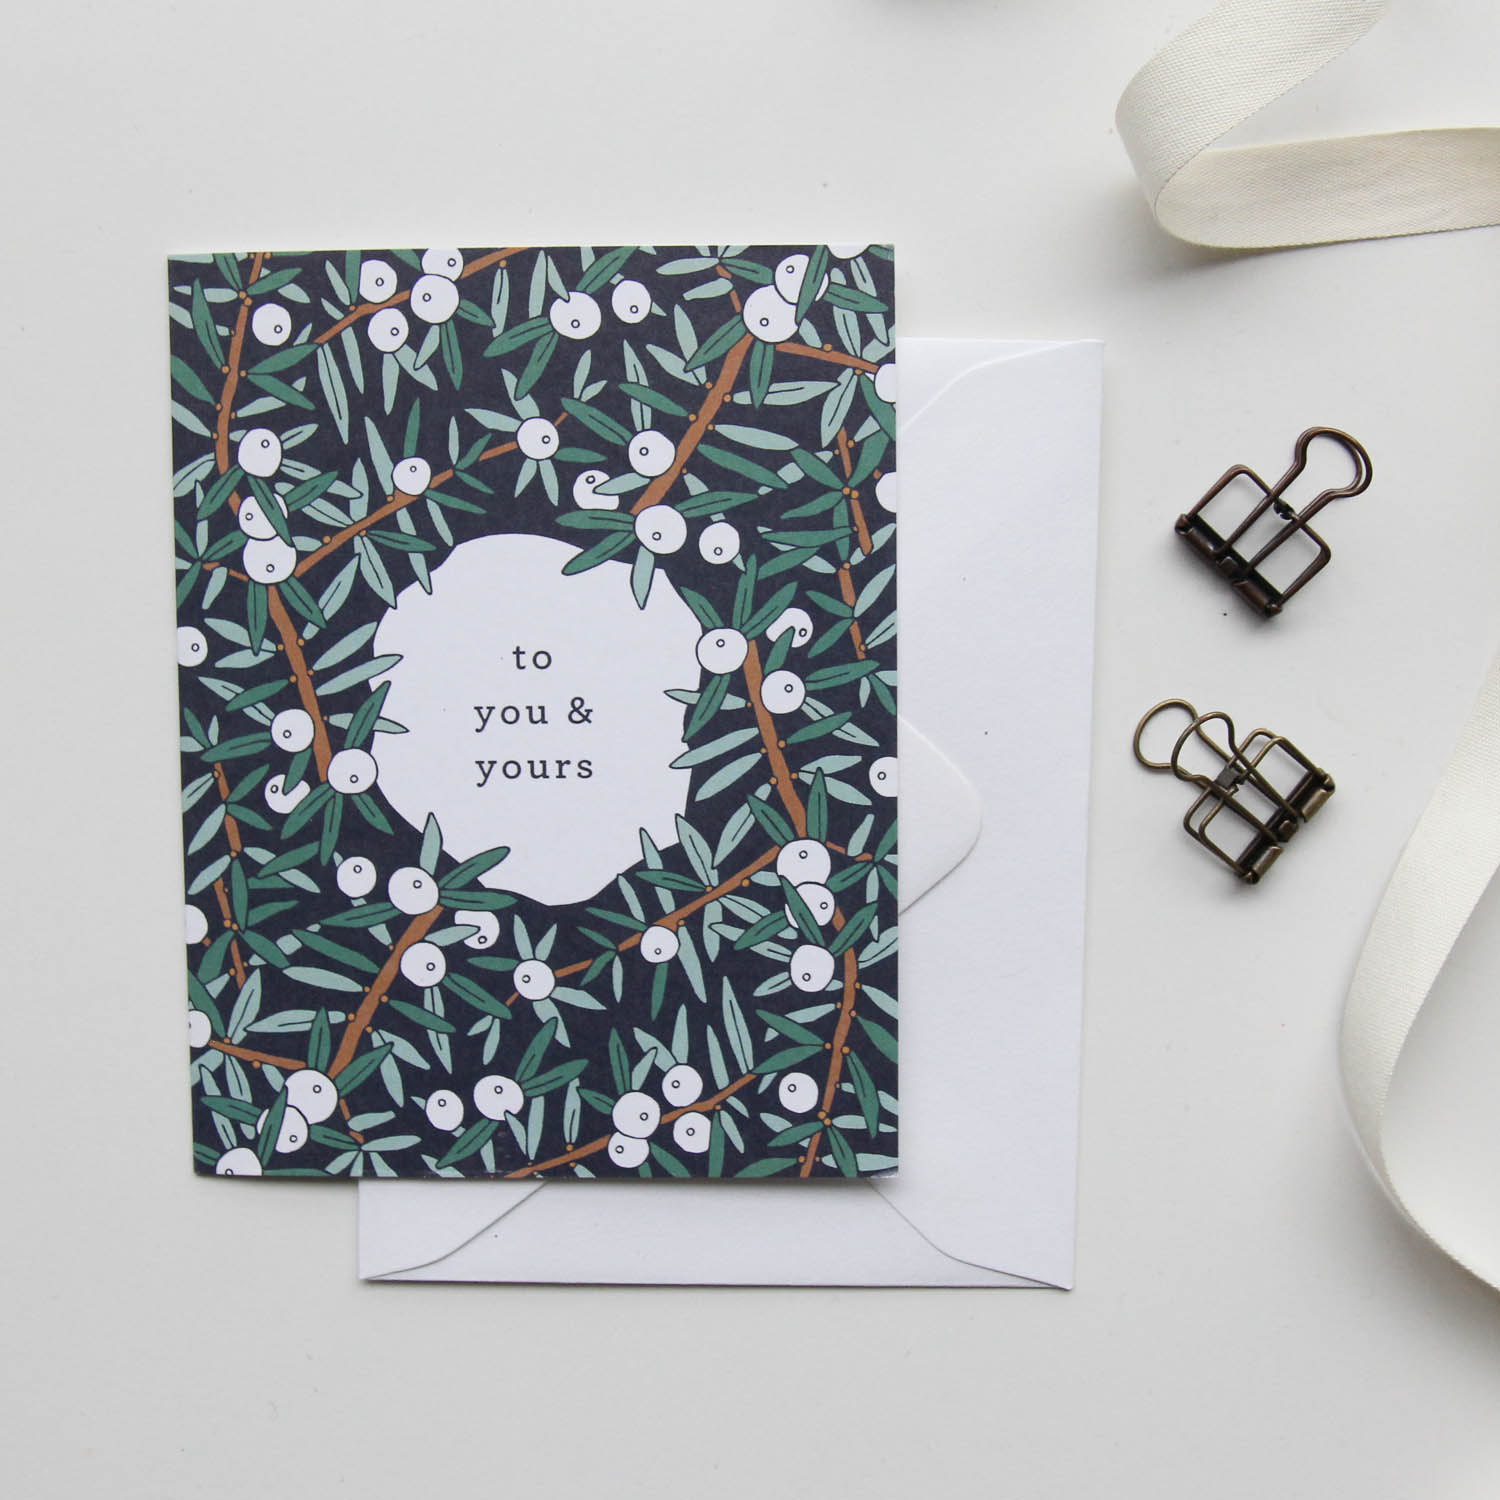 To You & Yours Card - Christmas Cards 2018, Holiday Cards | Illustrated Floral Christmas Cards by Root & Branch Paper Co.